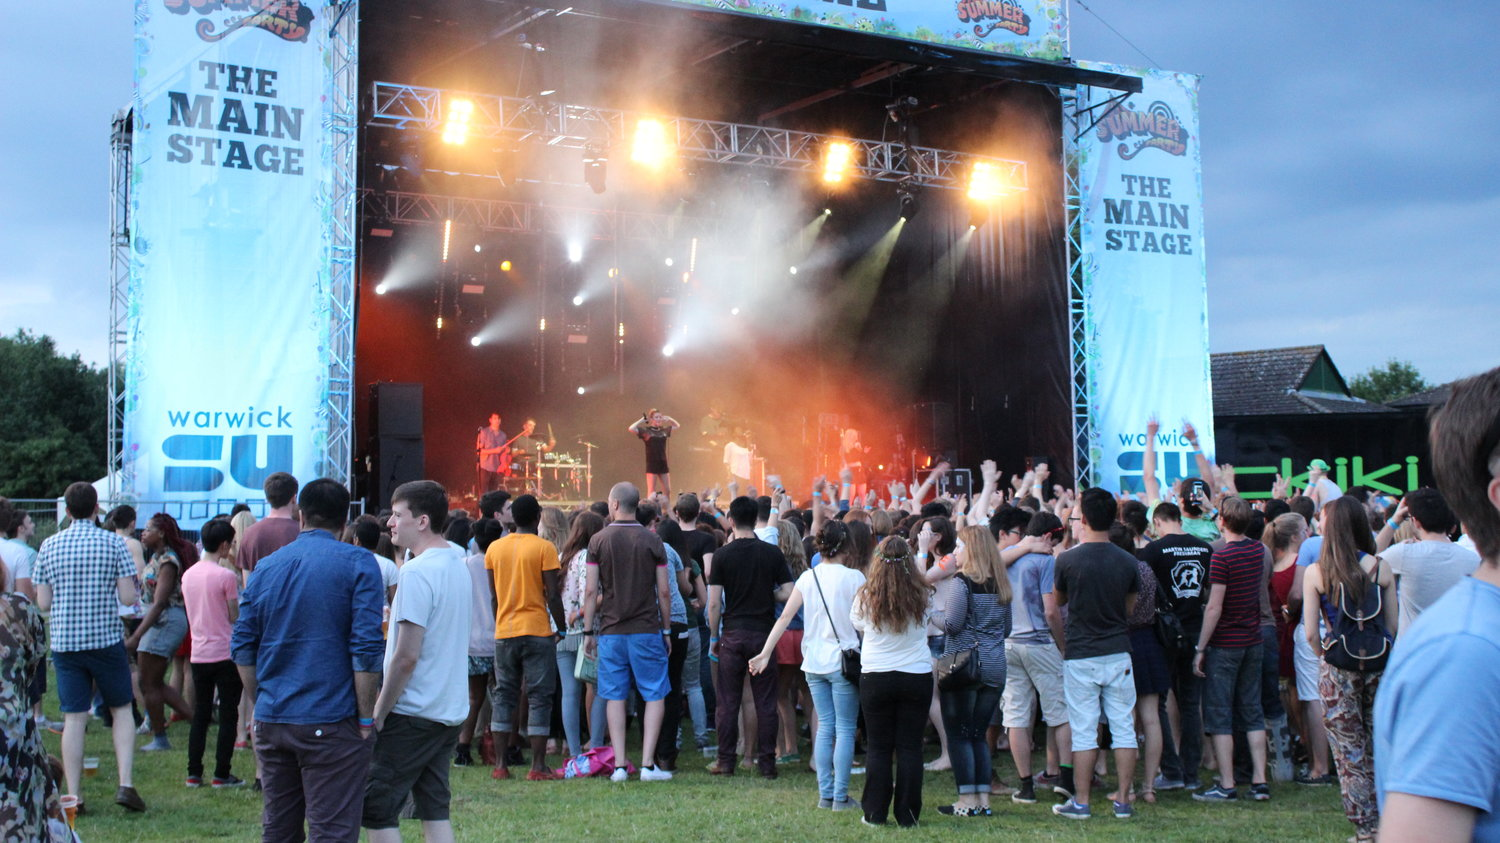 Students enjoy the main stage at Warwick University's Free Festival For Undergraduates, The Warwick Summer Party in 2014.